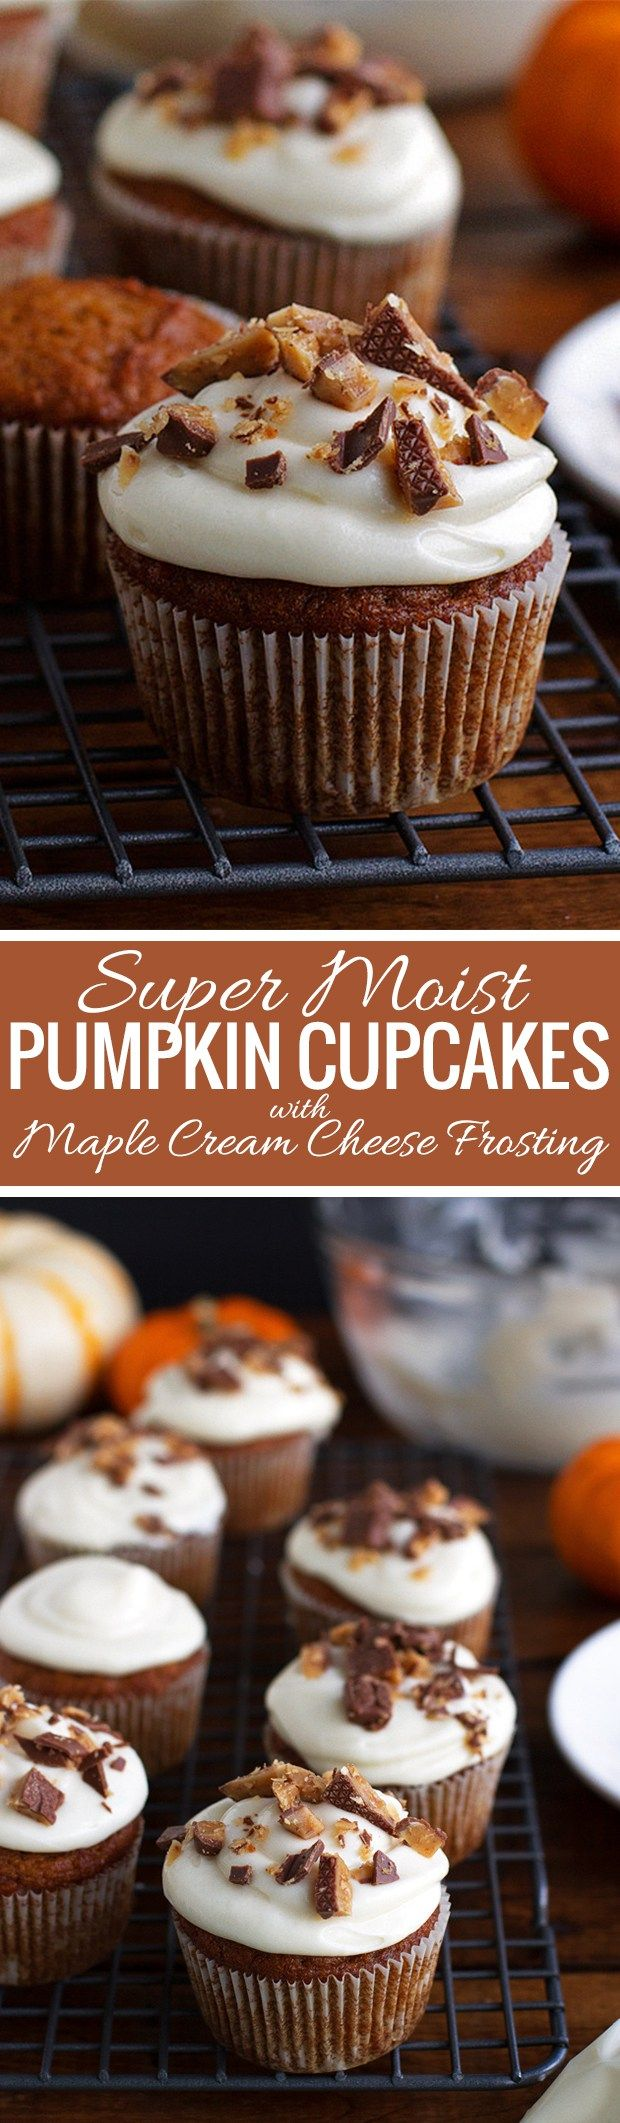 Moist pumpkin cupcakes with maple cream cheese frosting | Recipe ...